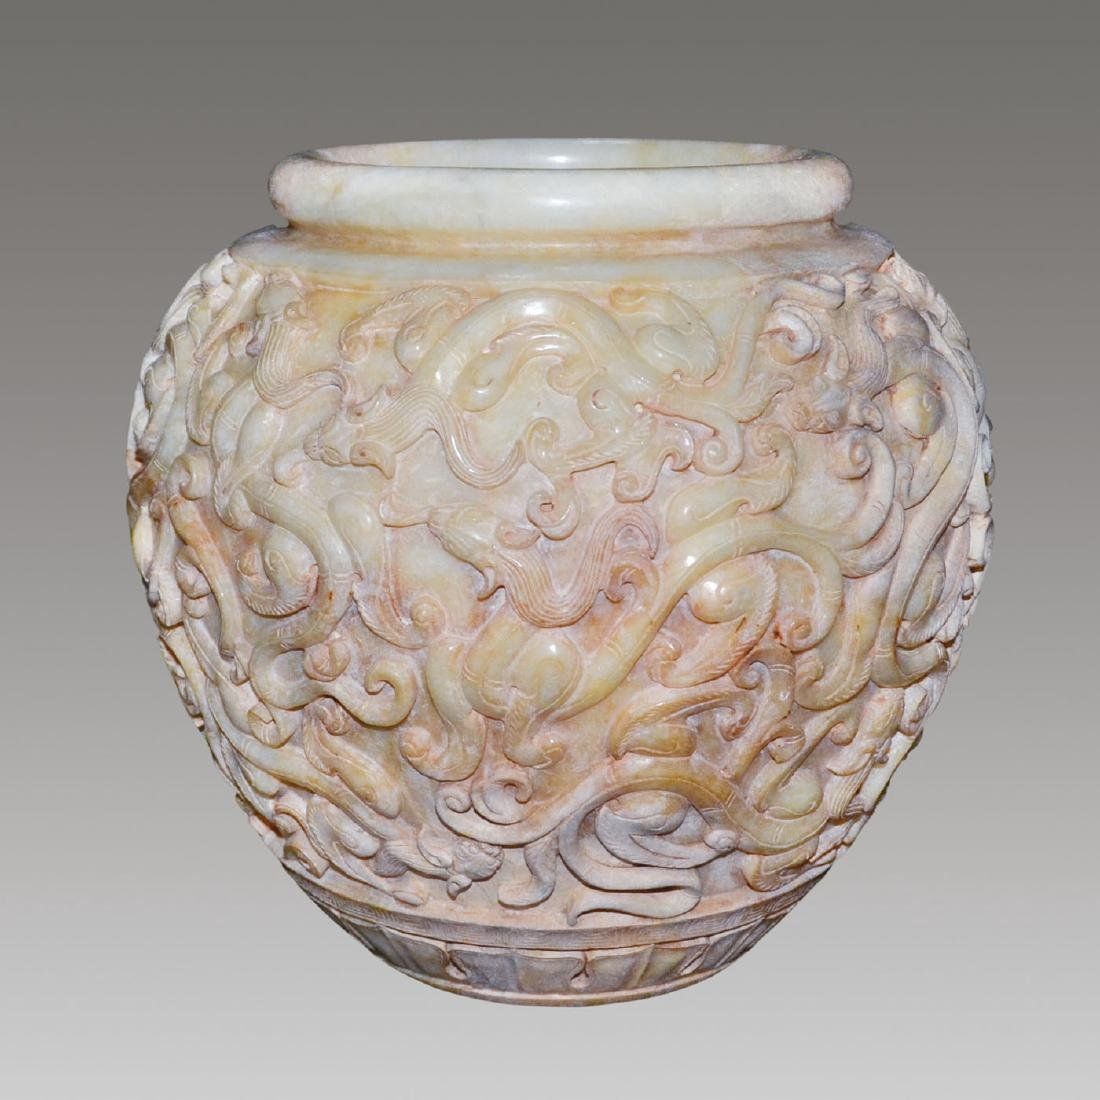 Han, A Magnificent and Very Rare Jade Jar carved with